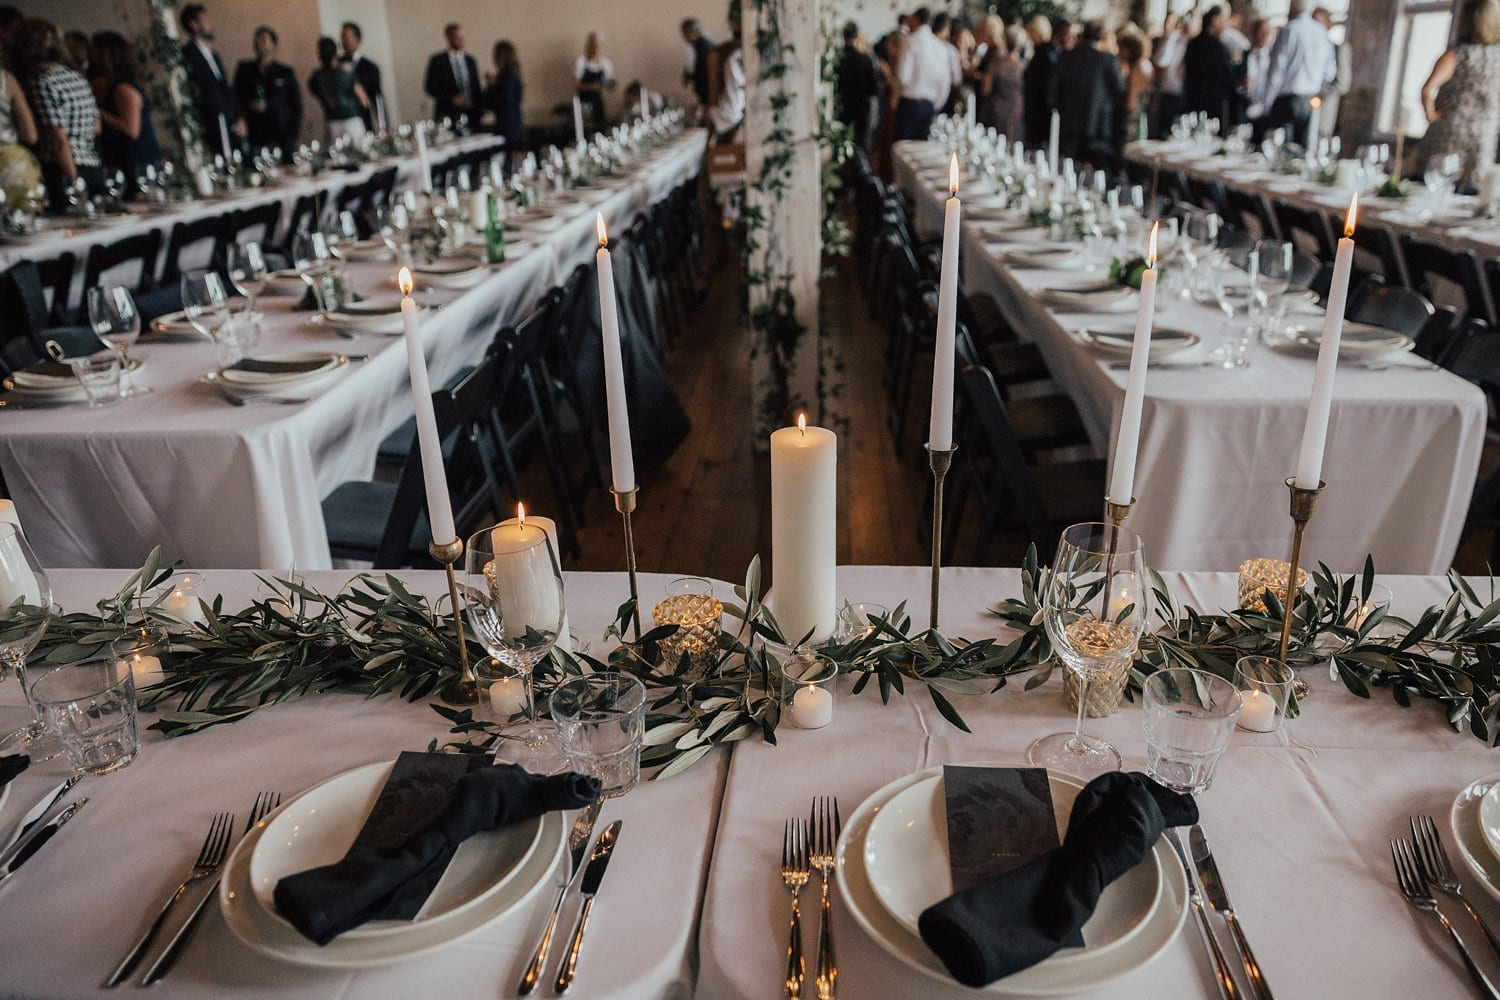 Real Weddings | Vinka Design | Real Brides Wearing Vinka Gowns | Hannah and Campbell - reception tables set up guests arriving